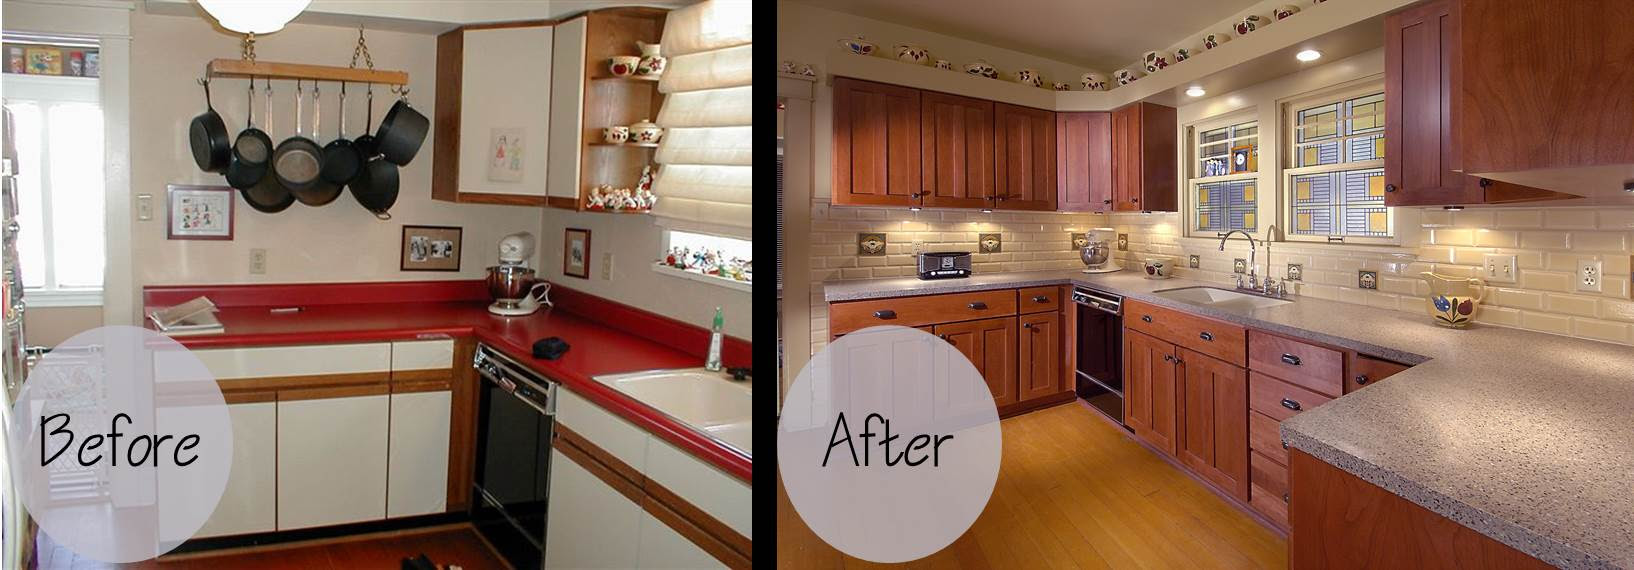 Lyon Kitchen Before and After